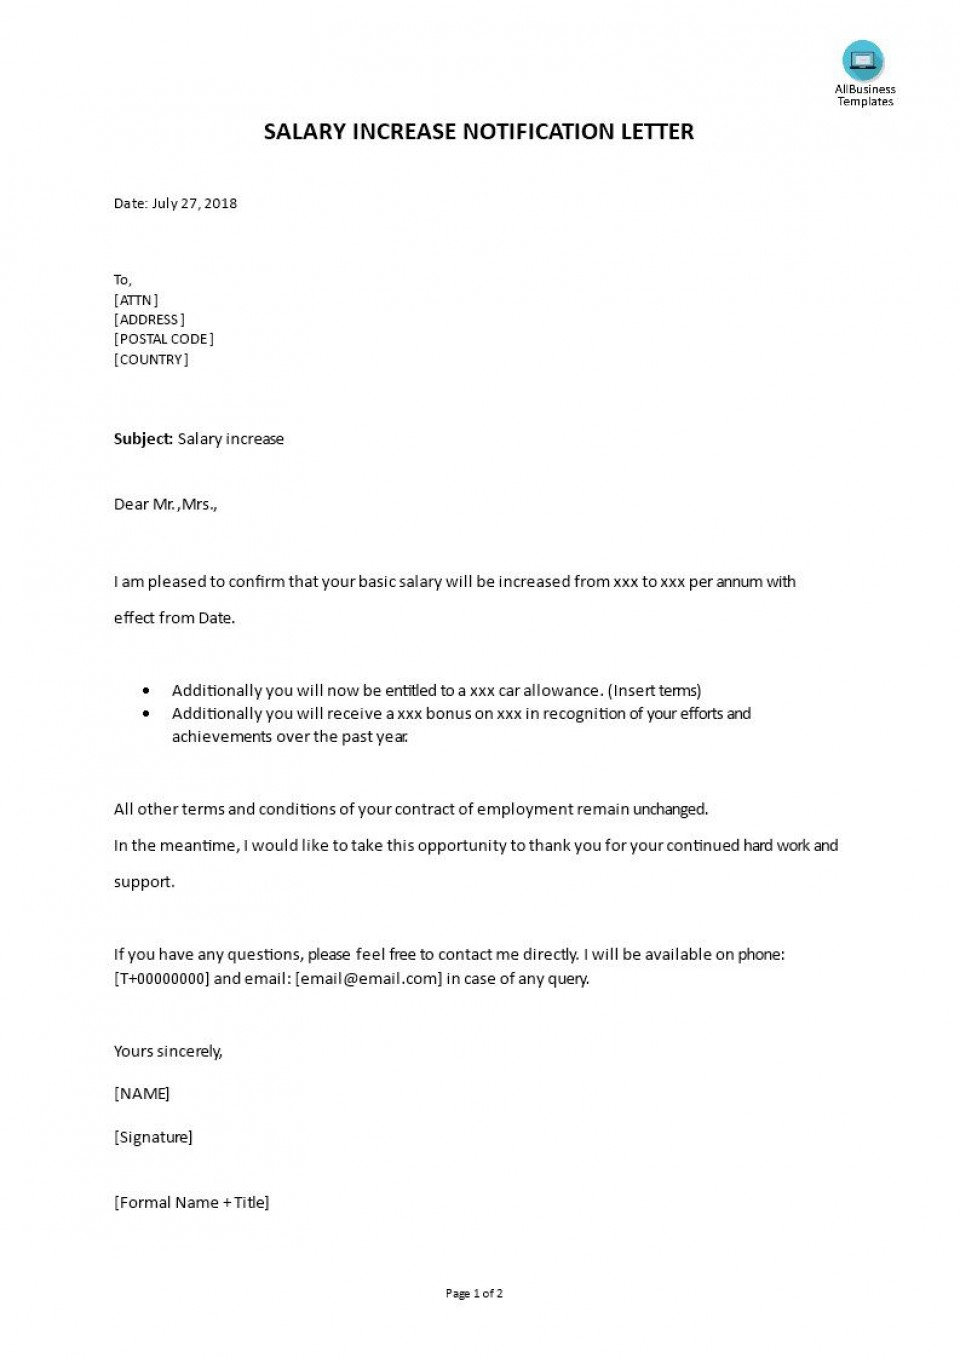 001 Wonderful Salary Increase Letter Template High Resolution  From Employer To Employee Australia No For960